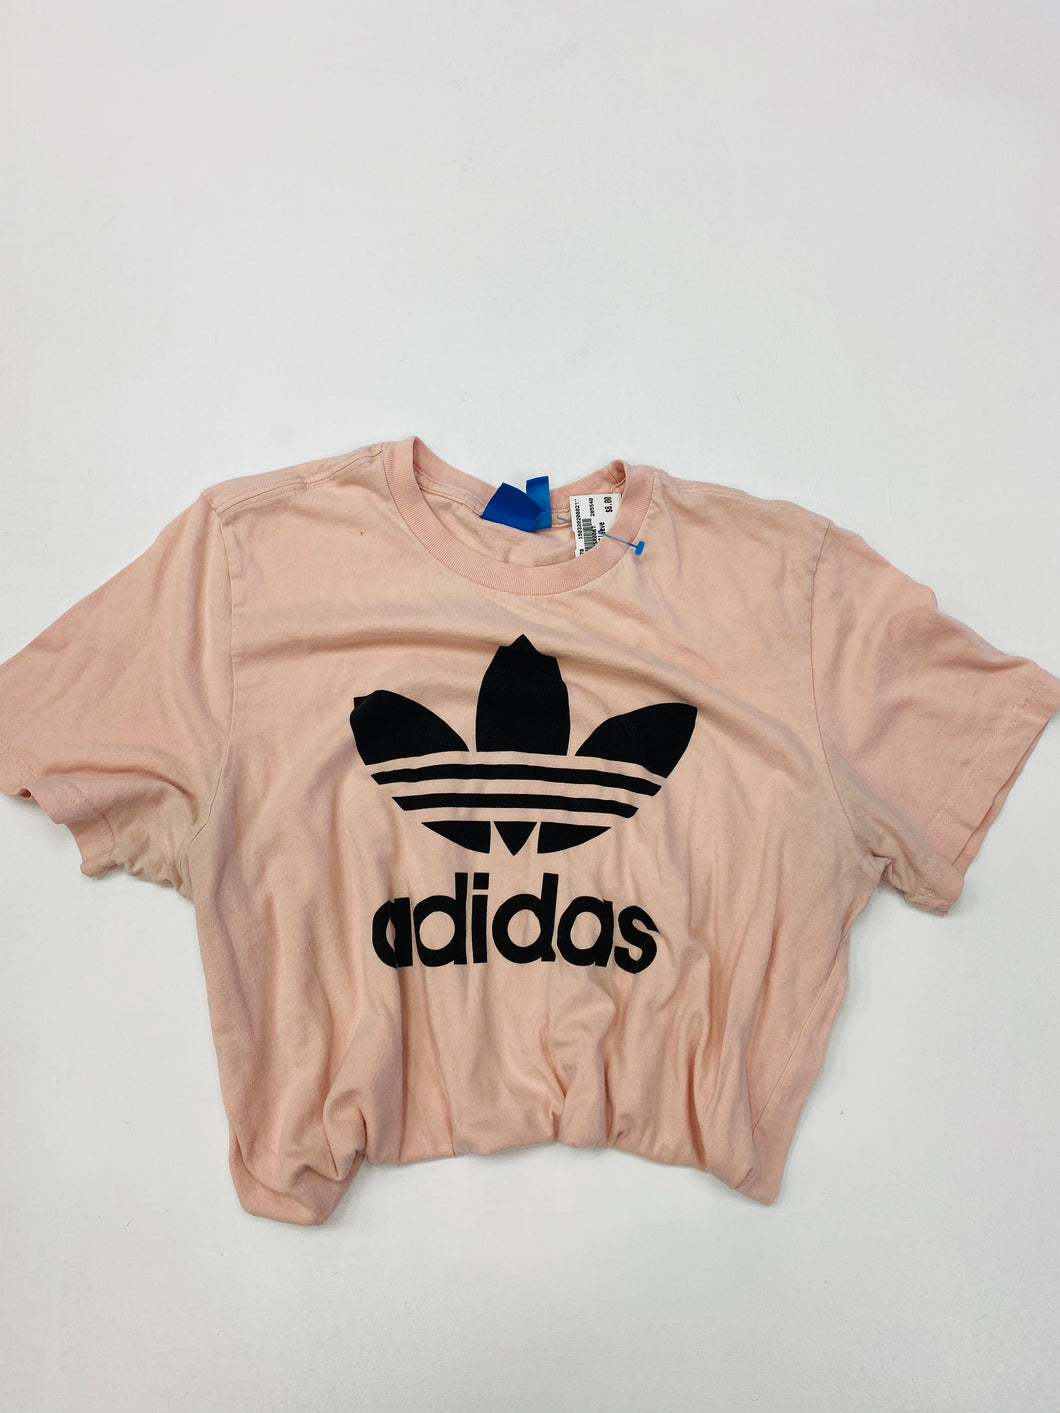 Adidas Womens Short Sleeve Top Large-40620FBF-EB71-4401-B31E-295DC6C5817C.jpeg